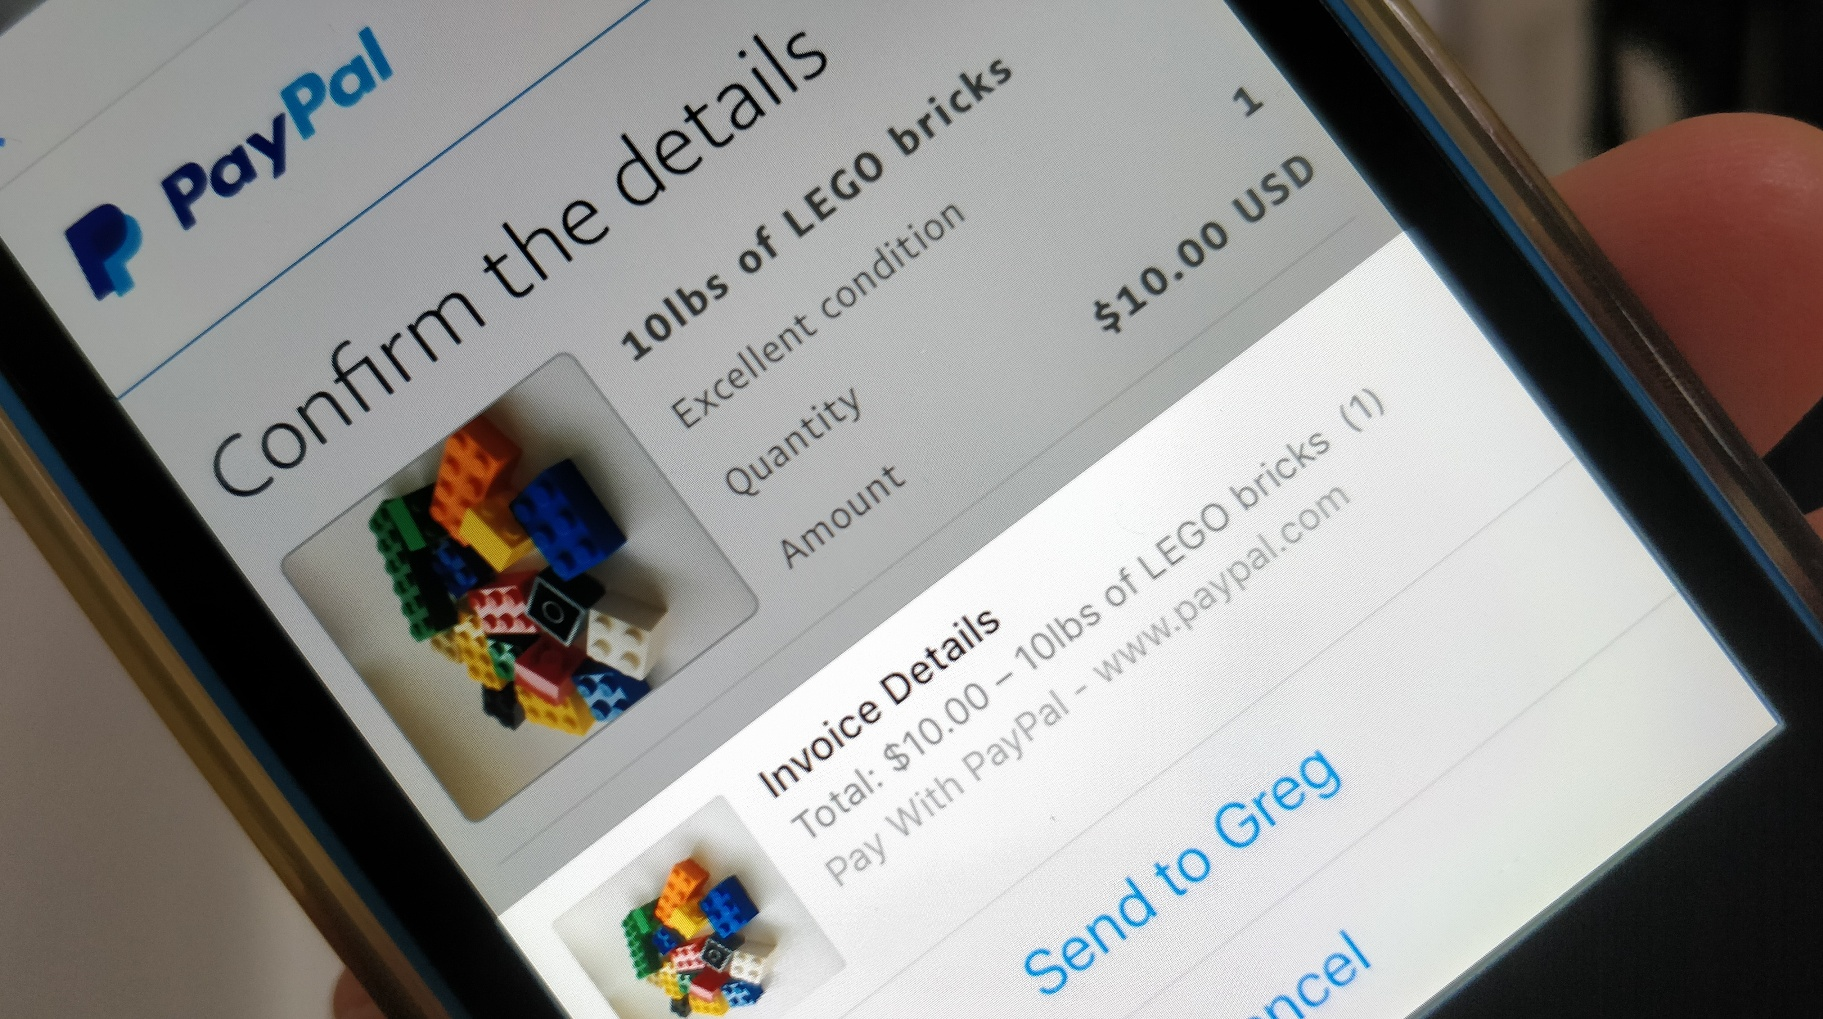 Sellers can now invoice buyers through PayPal's new chat extension for Messenger